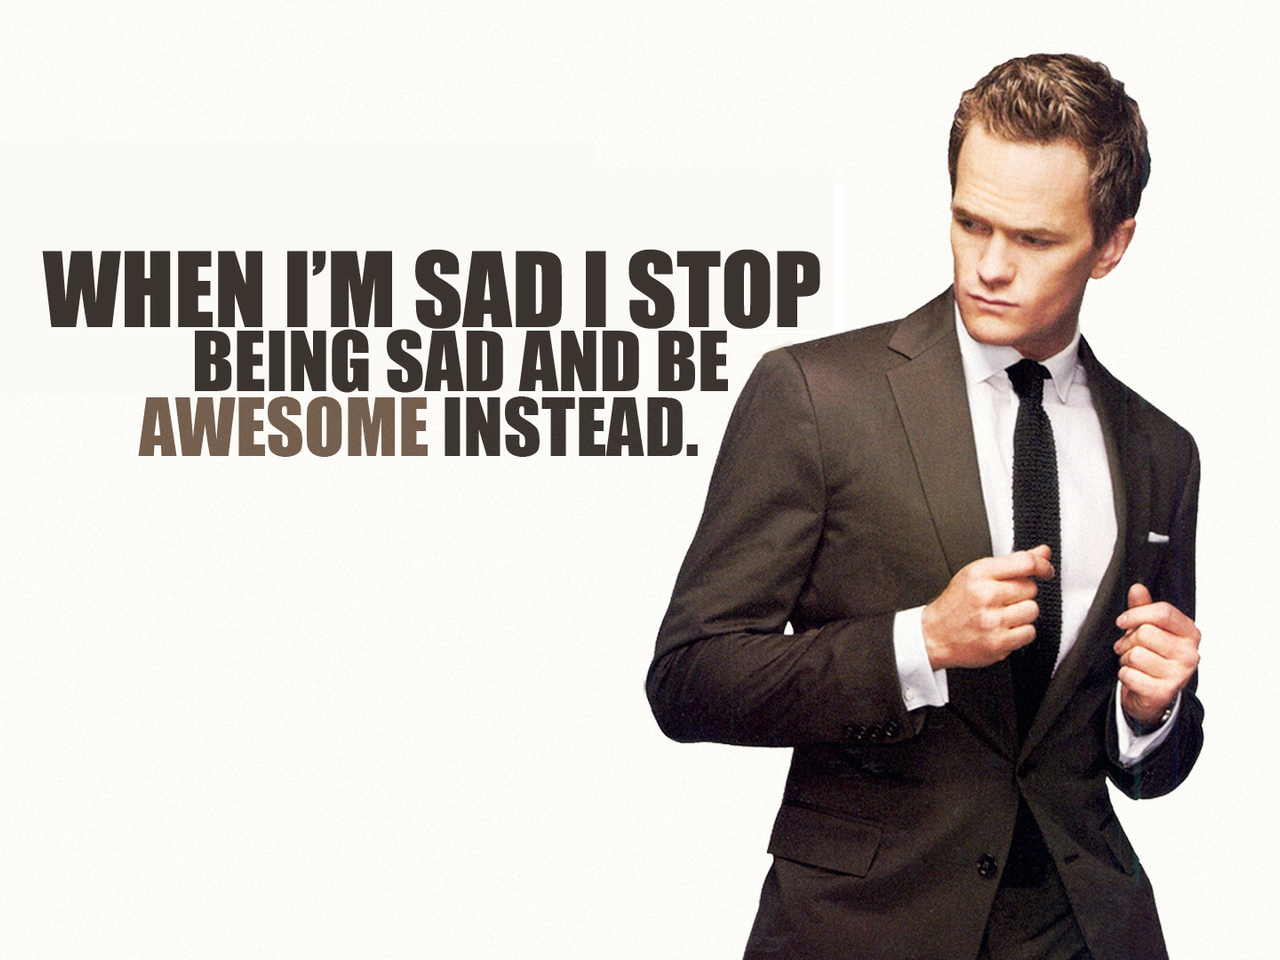 barney singles & personals Barney stinson's fearlessness, brutal honesty, unrelenting optimism, and impeccable sense of style make him a character i can look up to  stop missing dating .